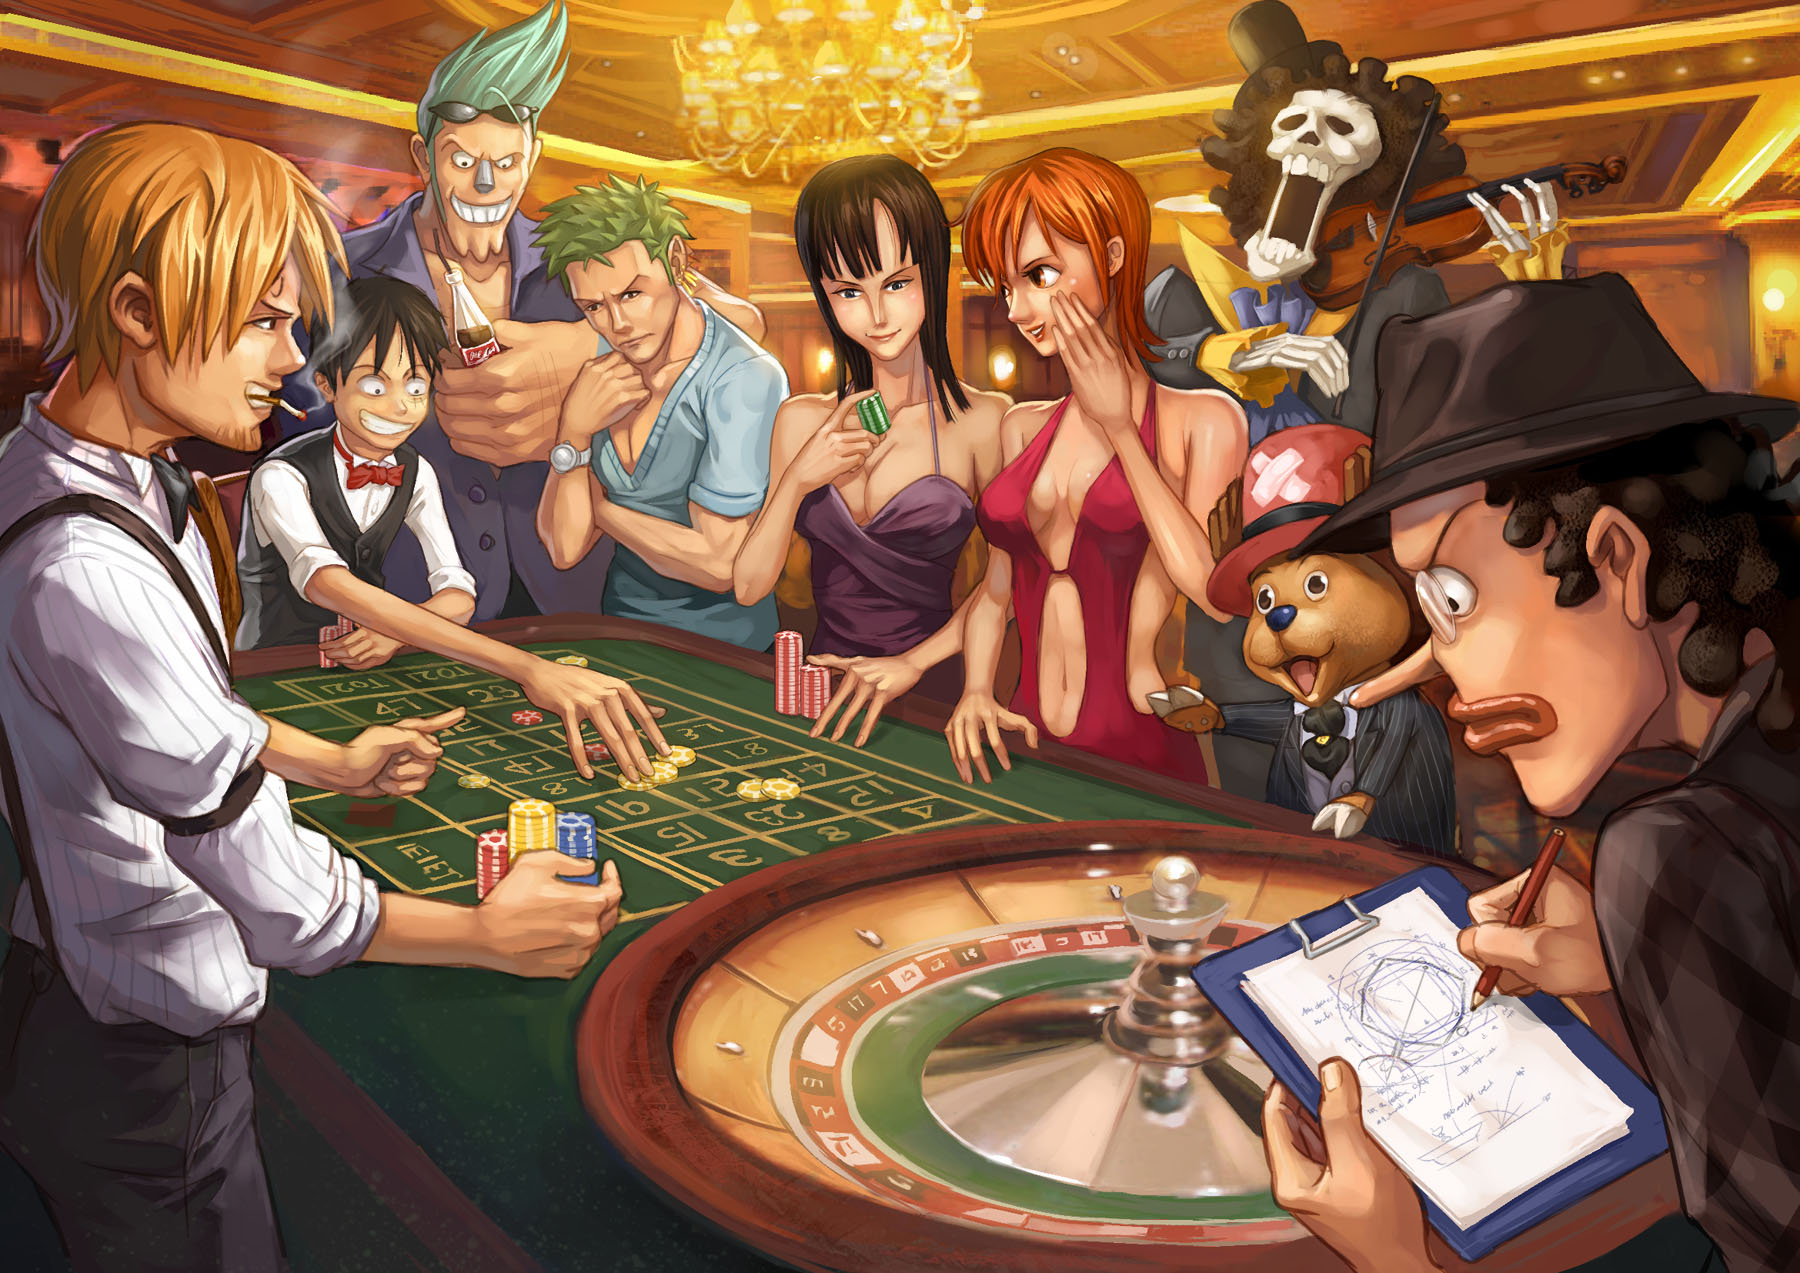 The Best Wallpaper Collection One Piece Hd Wallpaper 1800x1273